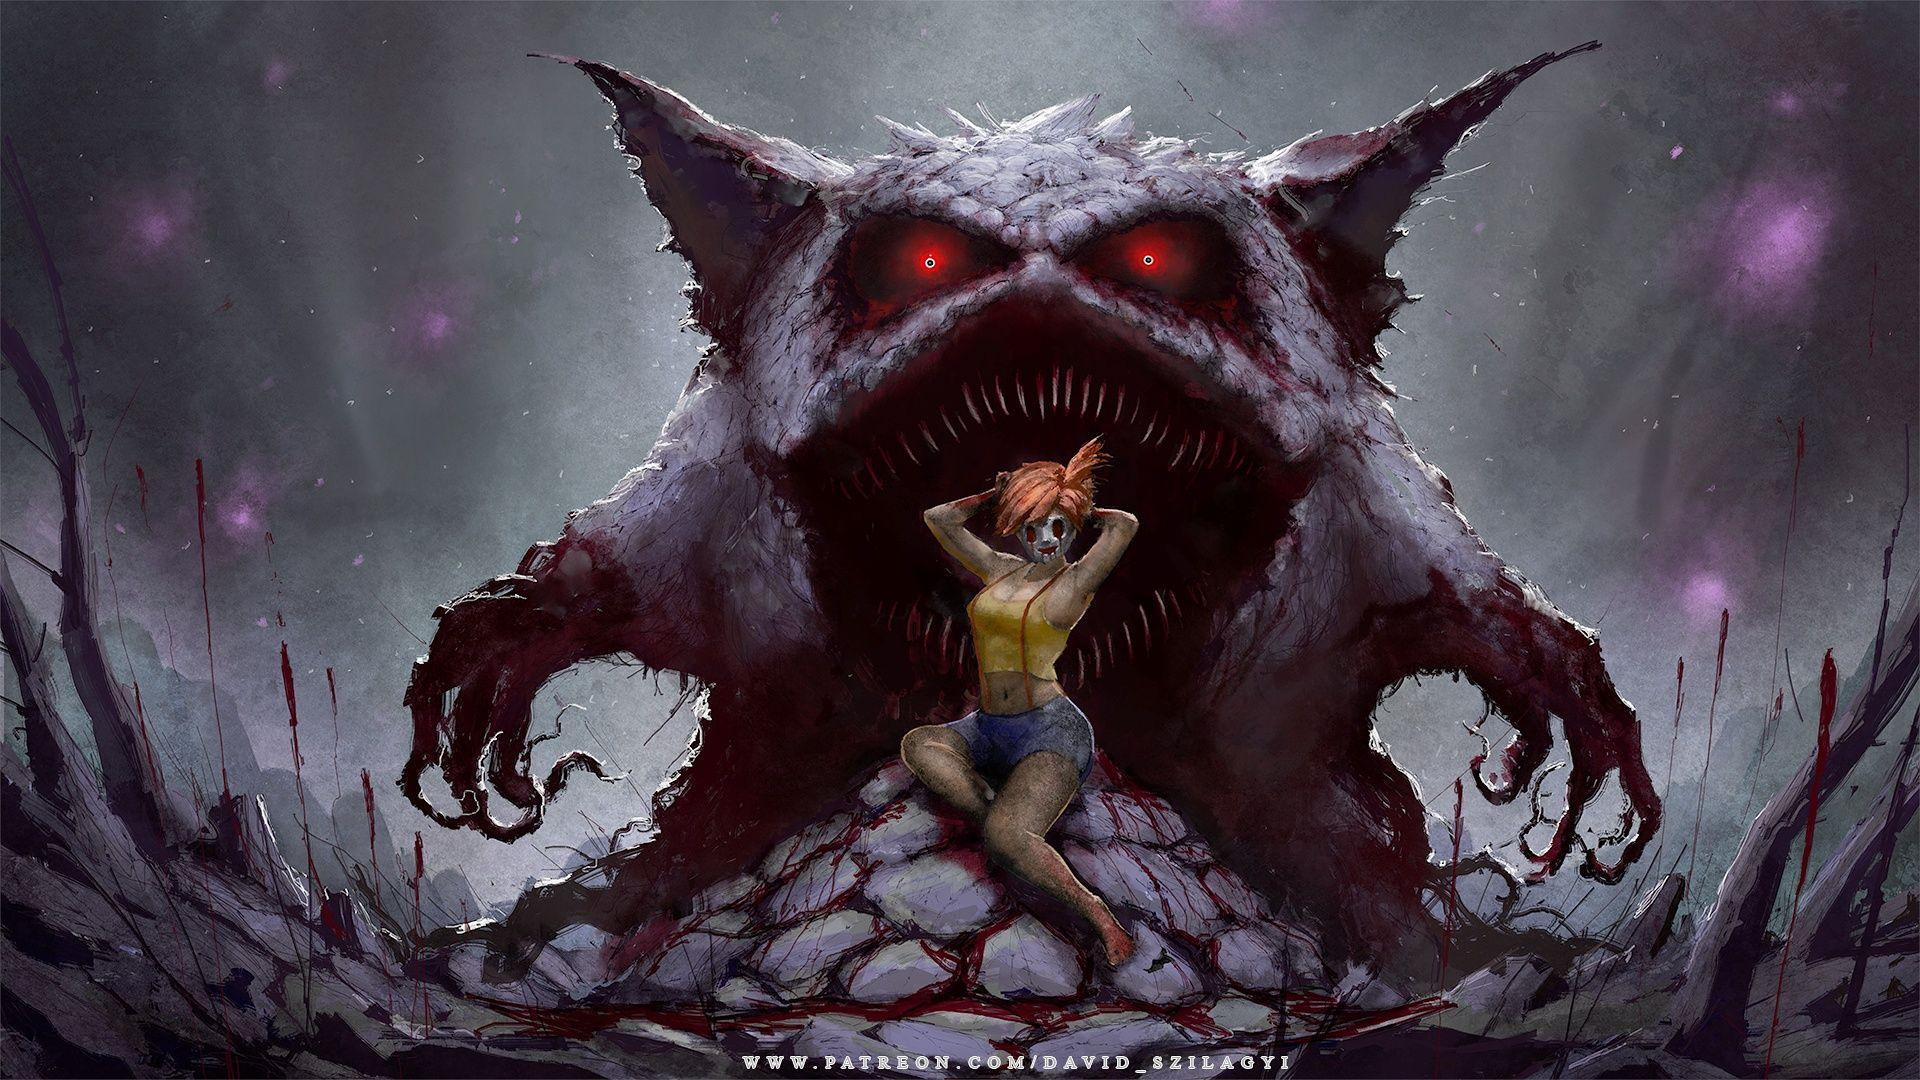 For My Fans! Misty Gengar Creepy Pinup Wallpaper (1920x1080p ...